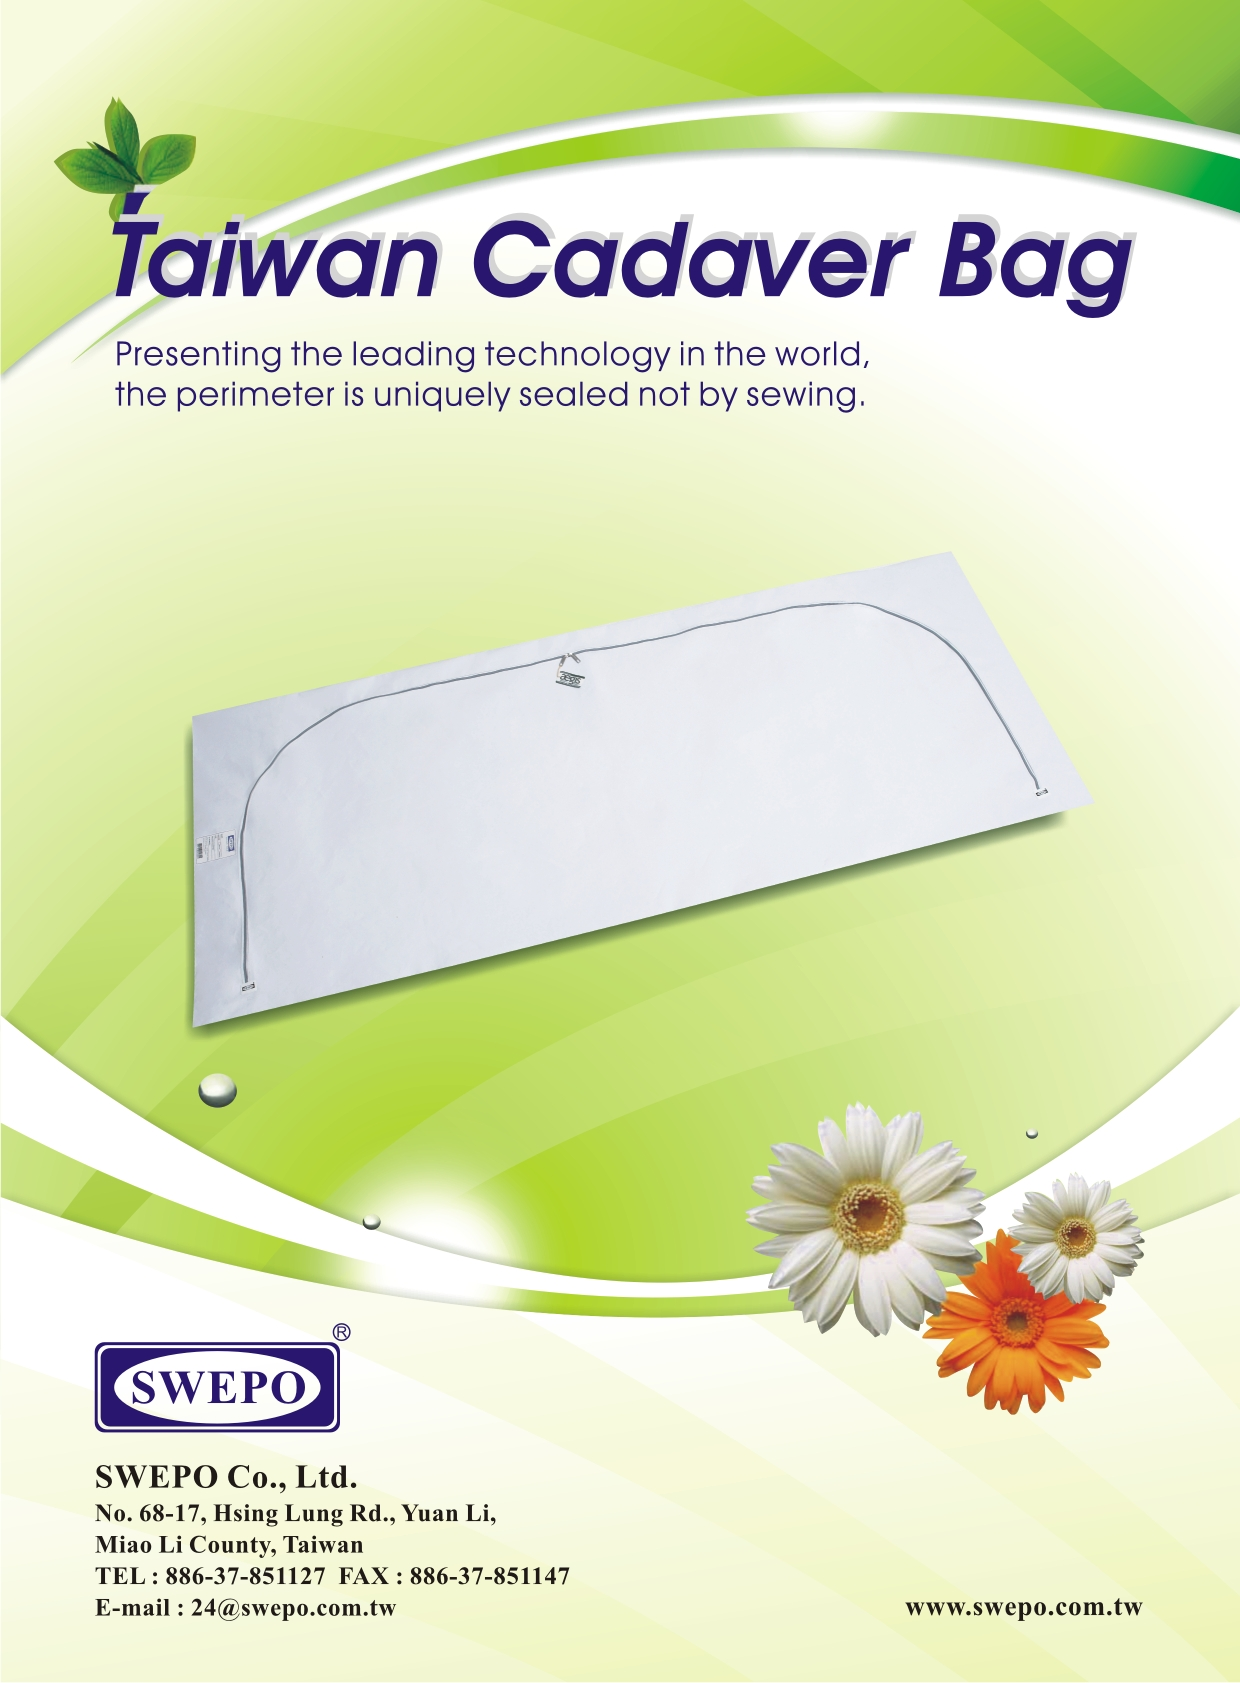 SWEPO BODY BAG (1) Made in Taiwan. Representing the leading technology in the world and the perimeter is uniquely sealed not by sewing. (2) The products are made of PEVA material which is specially developed by Swepo. It is extremely stronger to support up to 150 kgs. (3) Non toxic and odorless when being burned. (4) Resistance coldness down to -60°C. (5) Distinctive zipper sewing technique, sturdy and excellent. (6) Unique design of white zipper tape with gray zipper chain. (7) Using #5 nylon zipper with double sliders, 4 pullers attached to each of the inside and outside of each slider, so that in case the deceased therein revives during handling process, the bag can be easily opened by pulling the slider from inside. (8) Excellent nonskid surface of the body bag enabling easy handling. (9) Packed in a unique silver gray outer package to give a sense of high value. (10) We offer customized screen printing on body bags.  (11) Taiwan Patent No.M 288814           China Patent No.ZL 01 1 20066.9 We offer the printing service. SWEPO Co., Ltd. TEL: 886-37-851127 FAX: 886-37-851147 E-mail: 24@swepo.com.tw